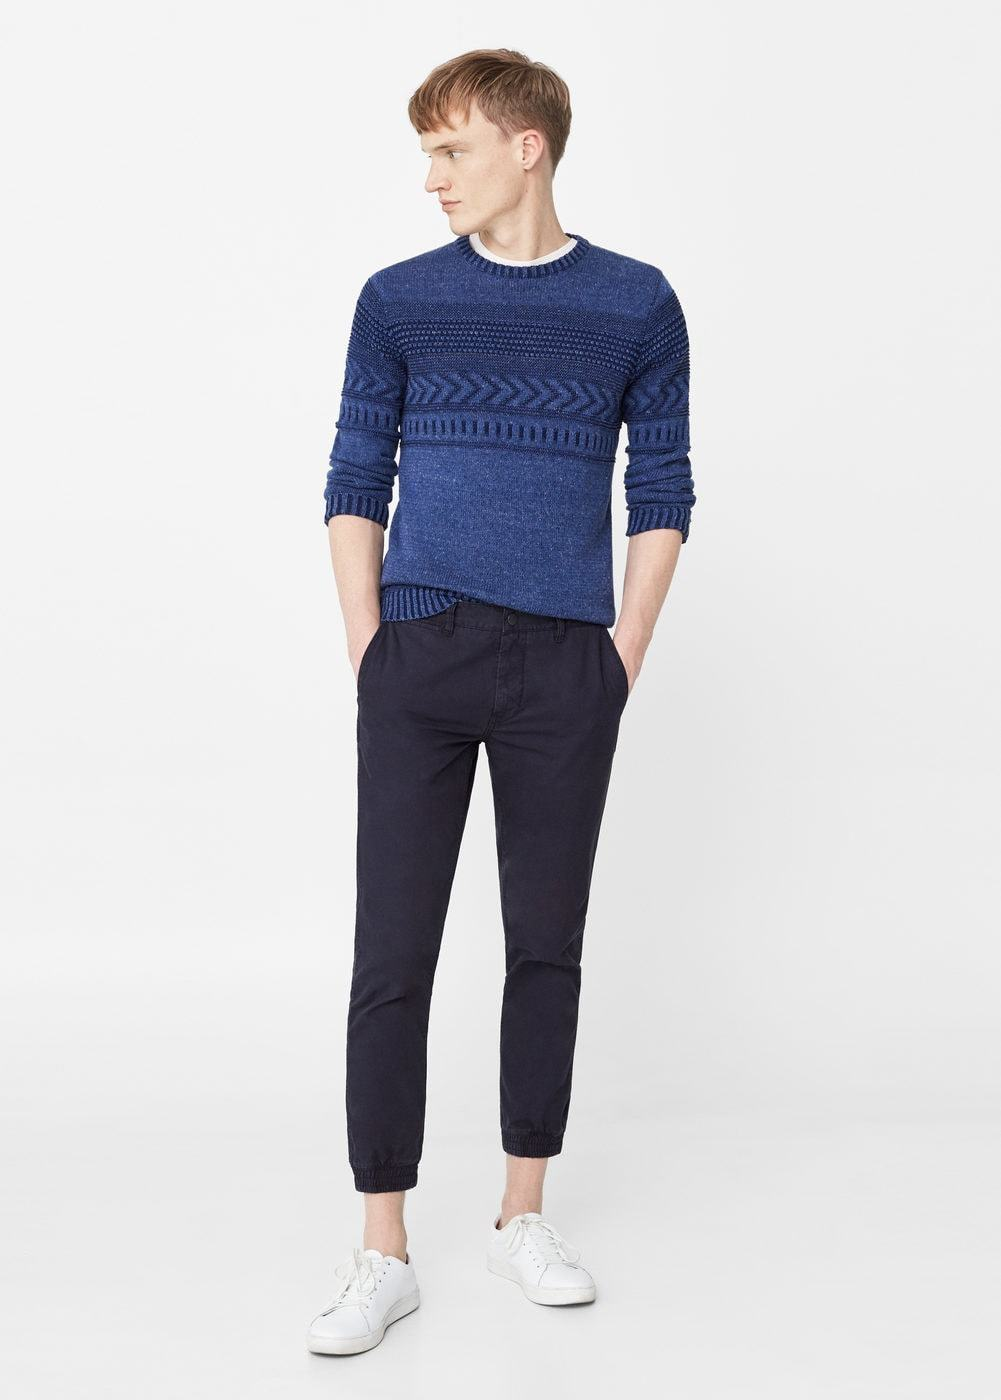 Men's Blue Cable Sweater, White Crew-neck T-shirt, Black Chinos ...